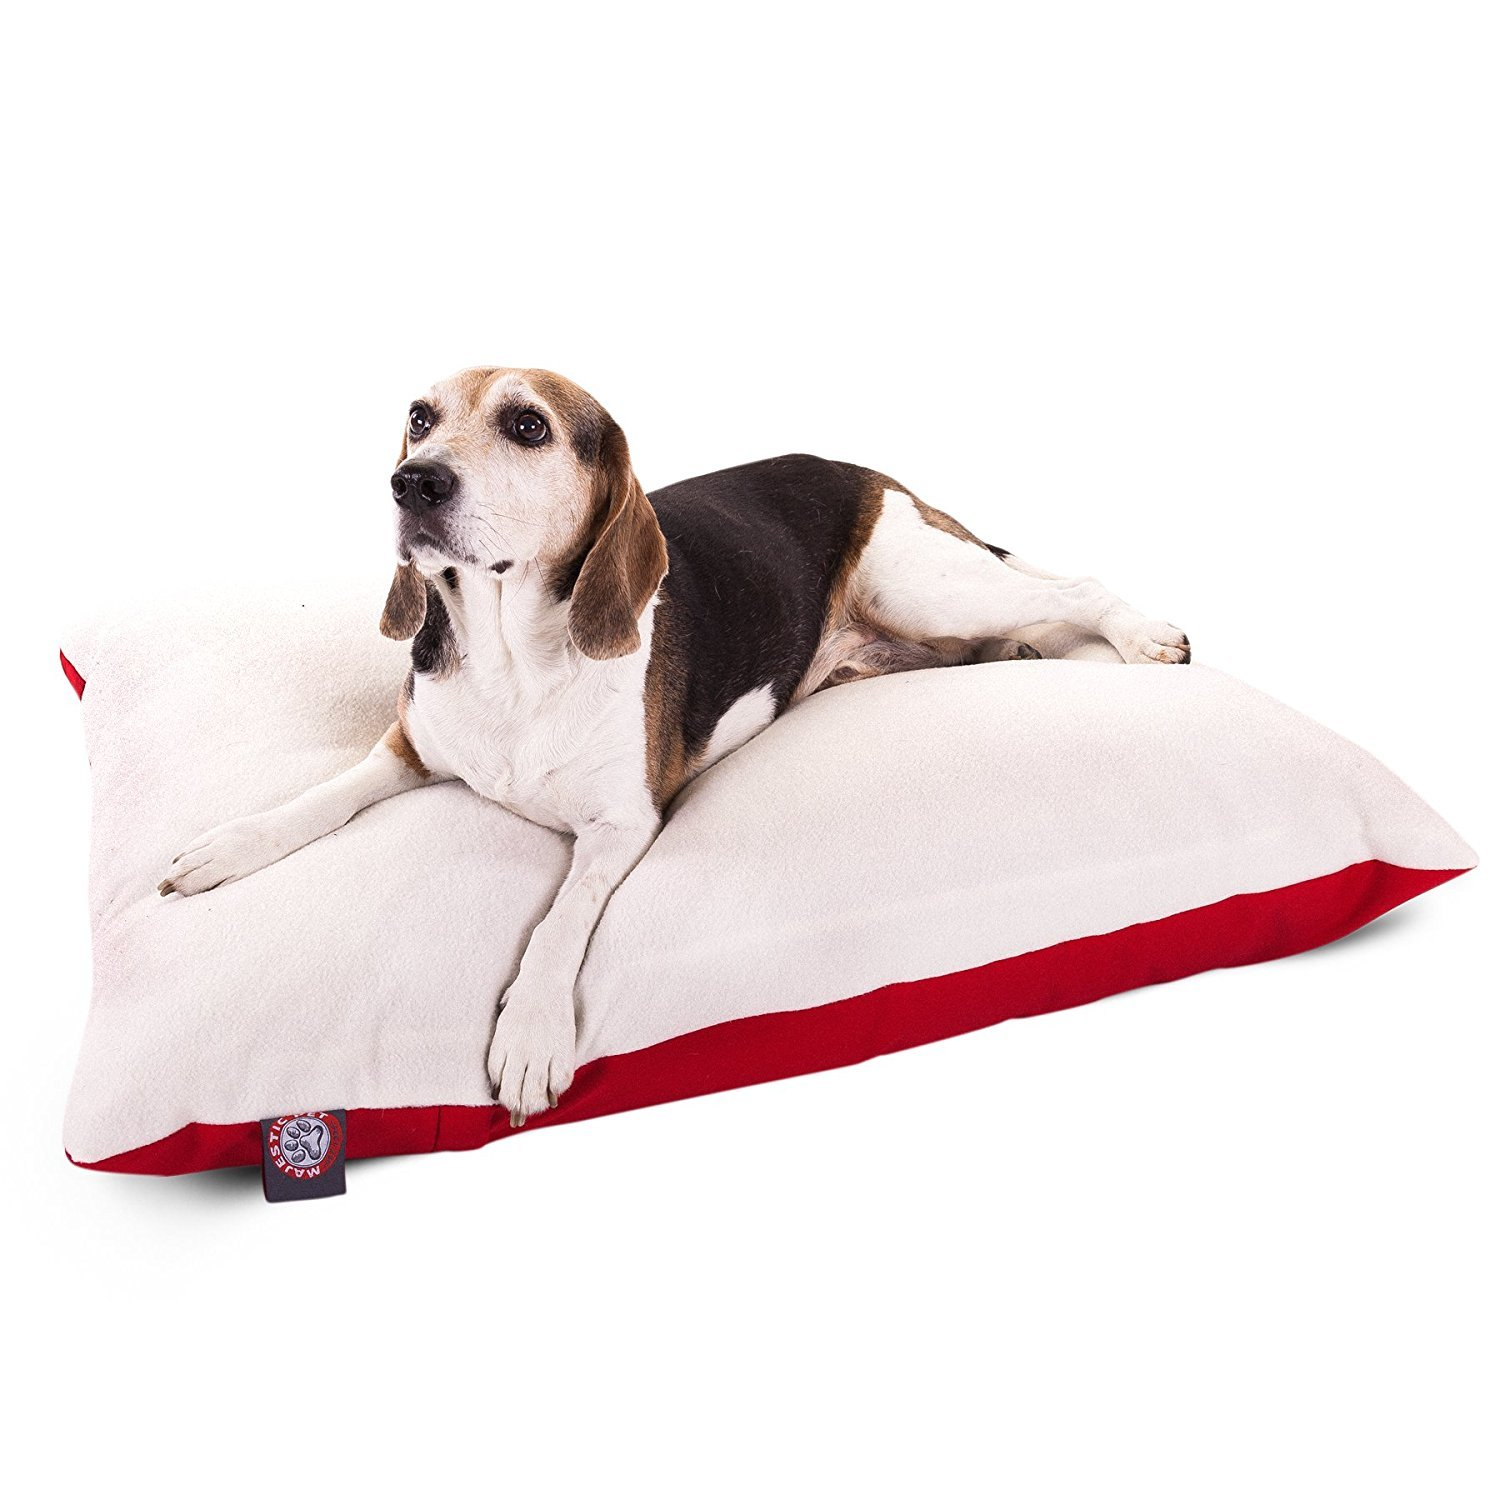 Red Medium (40 in. x 30 in.) Red Medium (40 in. x 30 in.) Majestic Pet 30-Inch x 40-Inch Rectangle Pet Bed By Majestic Pet Products, Medium, Red